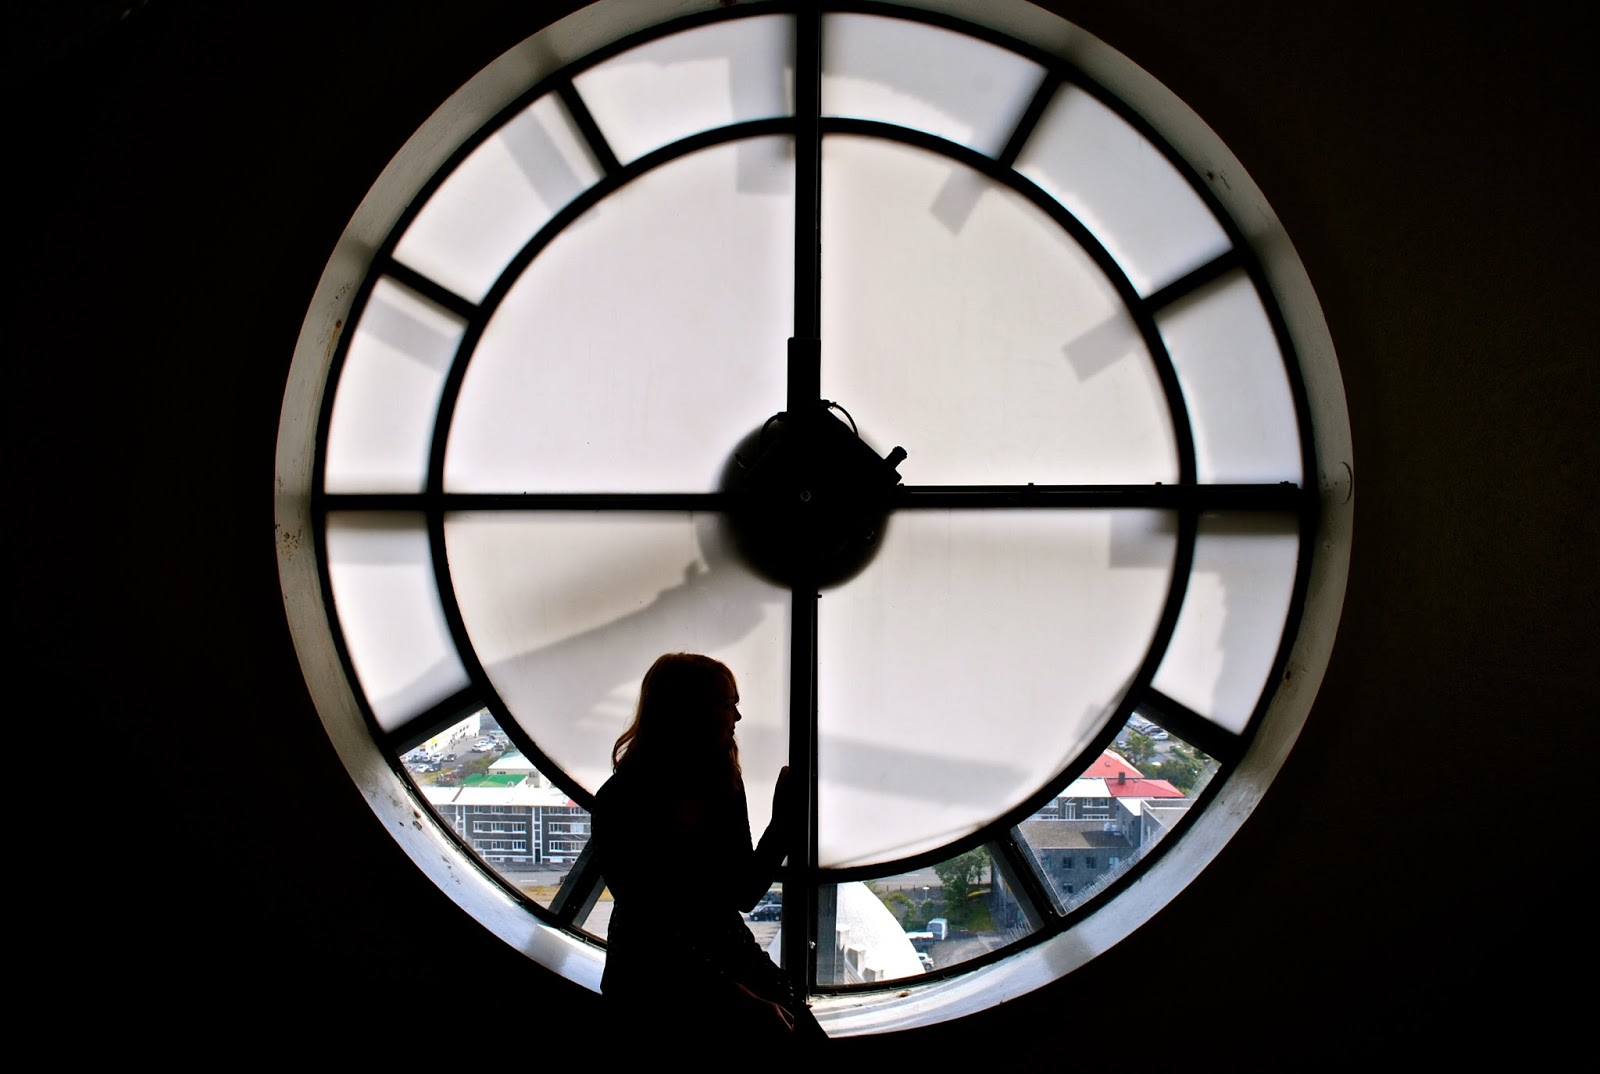 Things to do in Reykjavik Iceland : Admire the view from the Hallgrimskirkja church clock tower